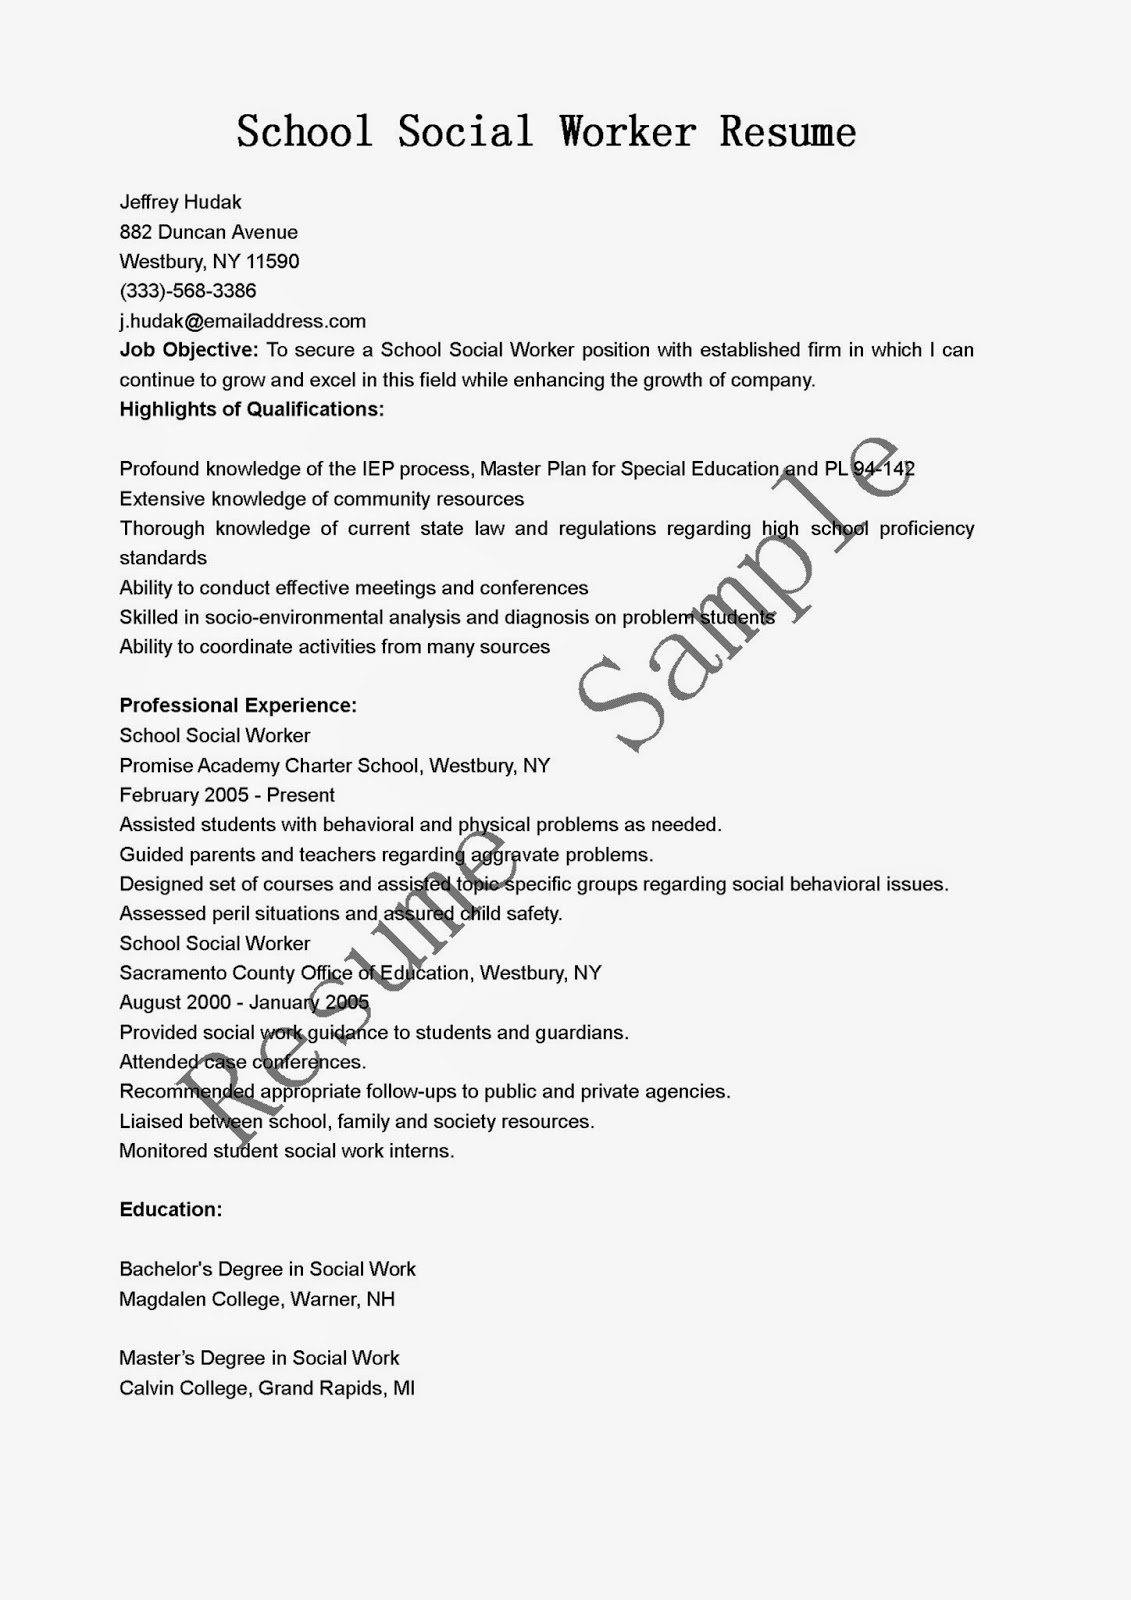 resume samples school social worker resume sample - Social Worker Resume Examples